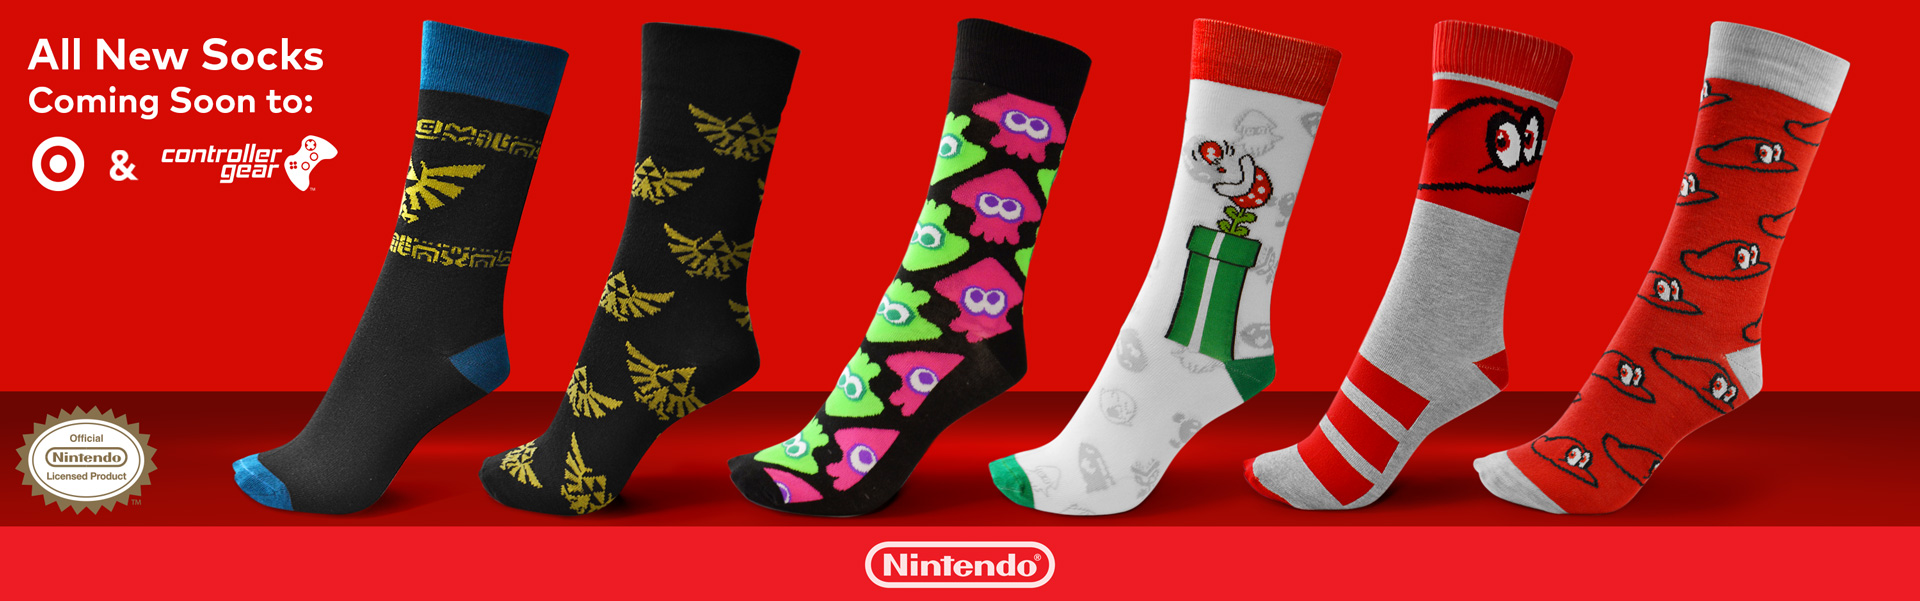 Knit Socks by Controller Gear Licensed by Nintendo at Target